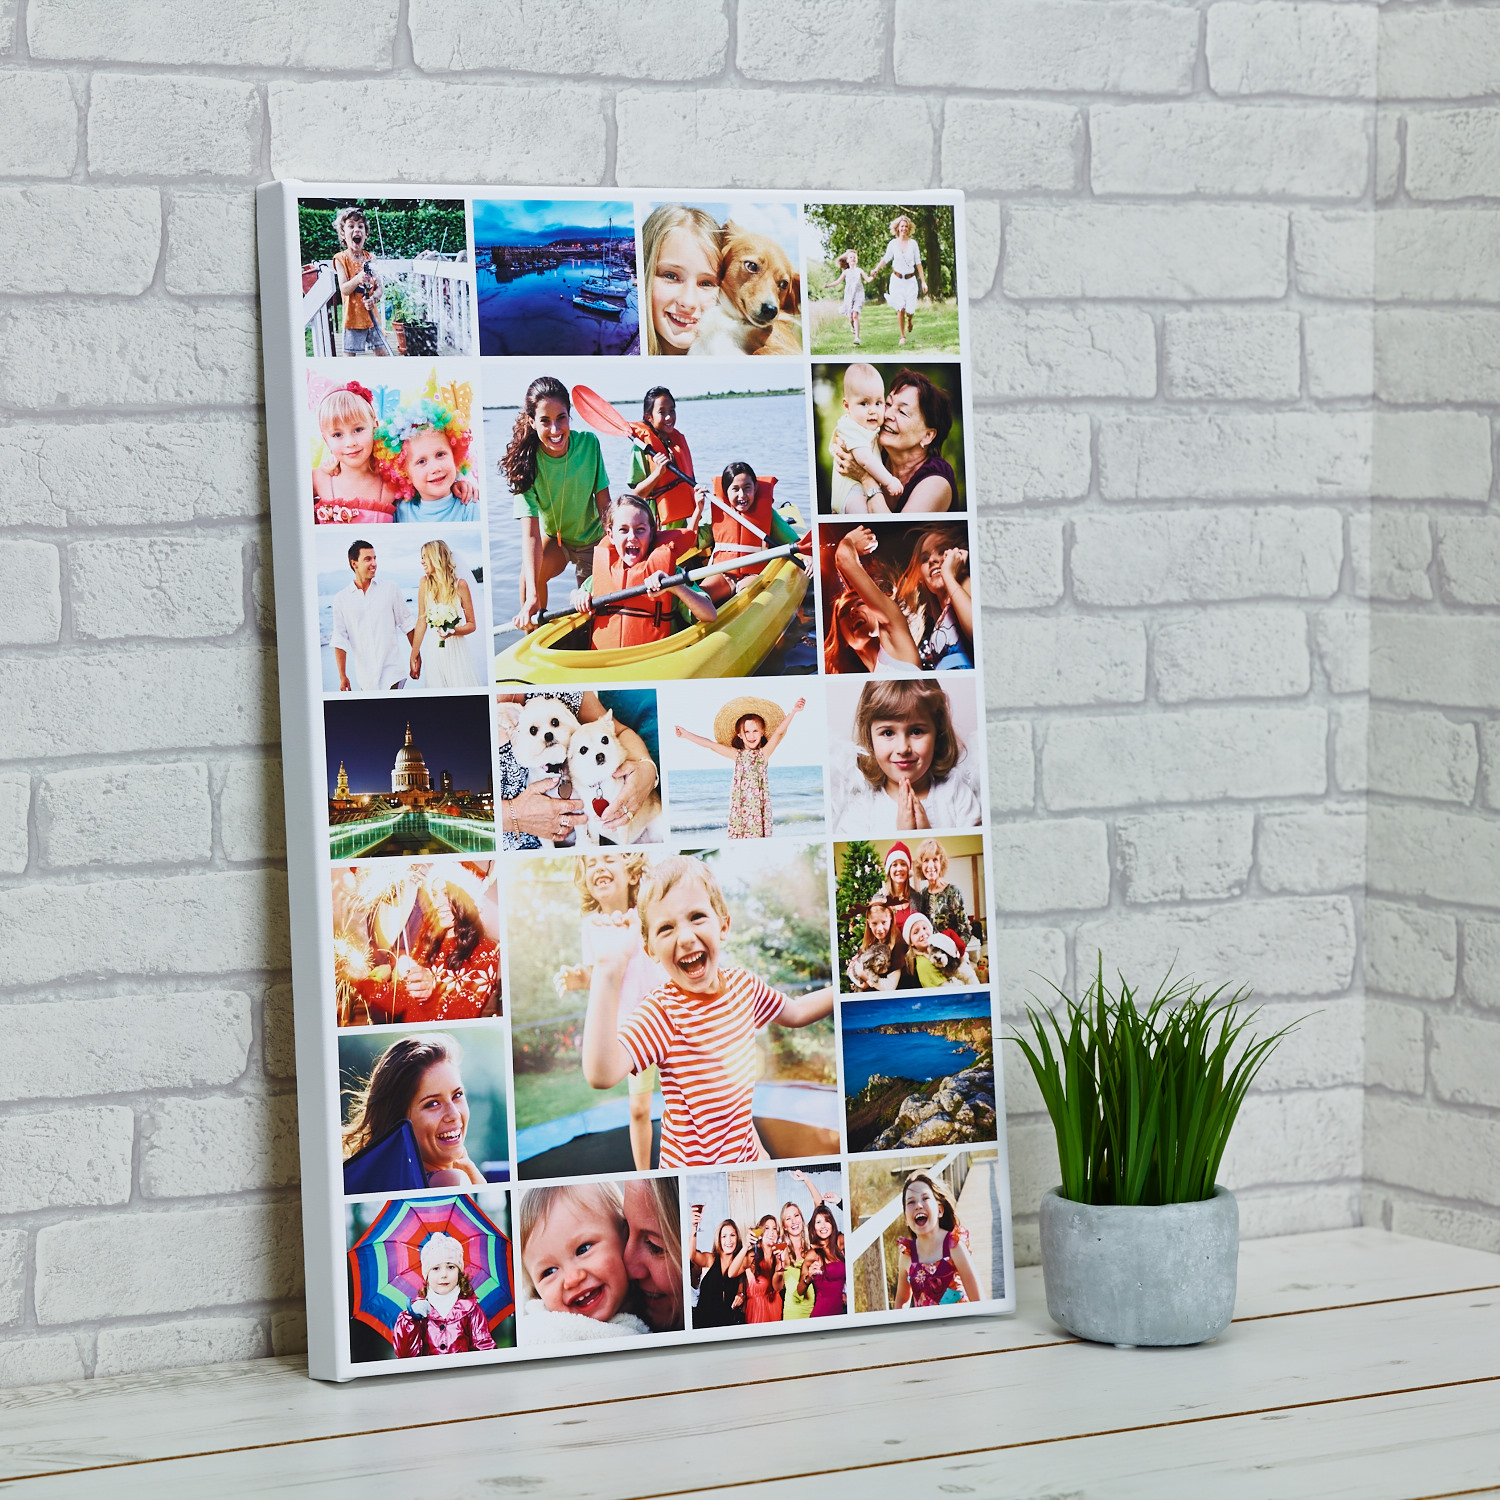 7 digital photo frame trutech Tippecanoe Boats at m